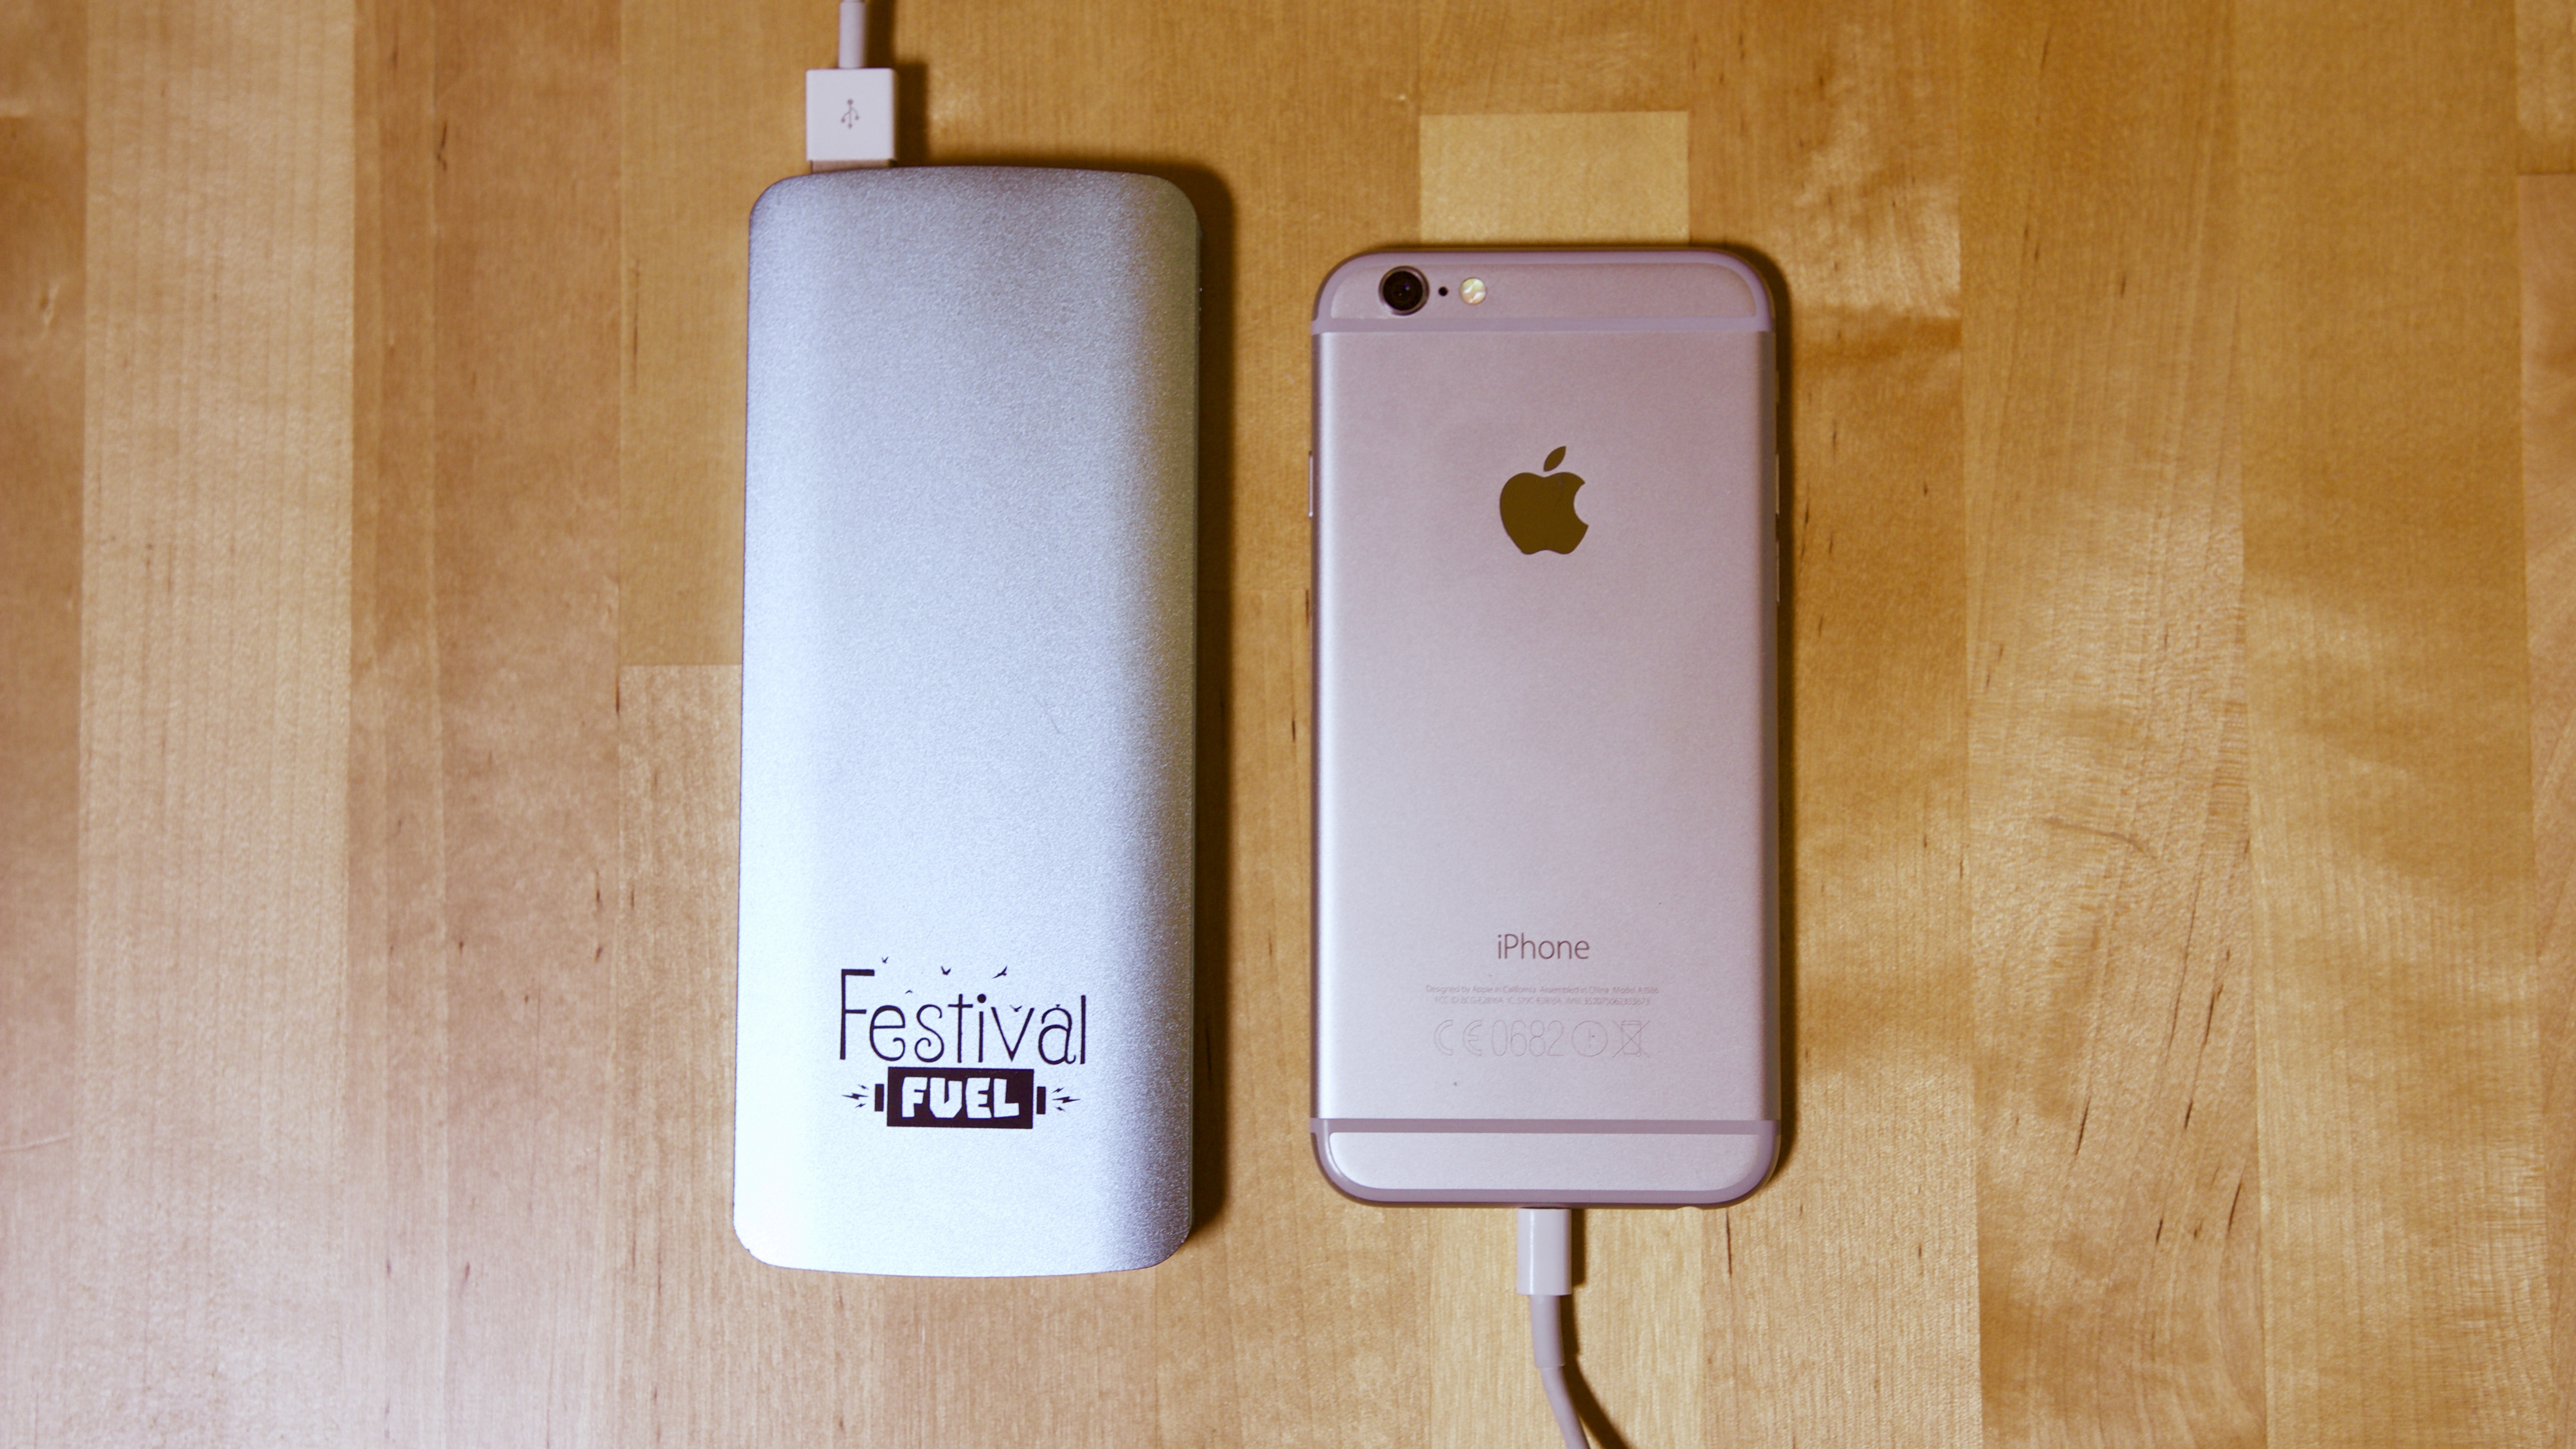 Festival Portable Charger